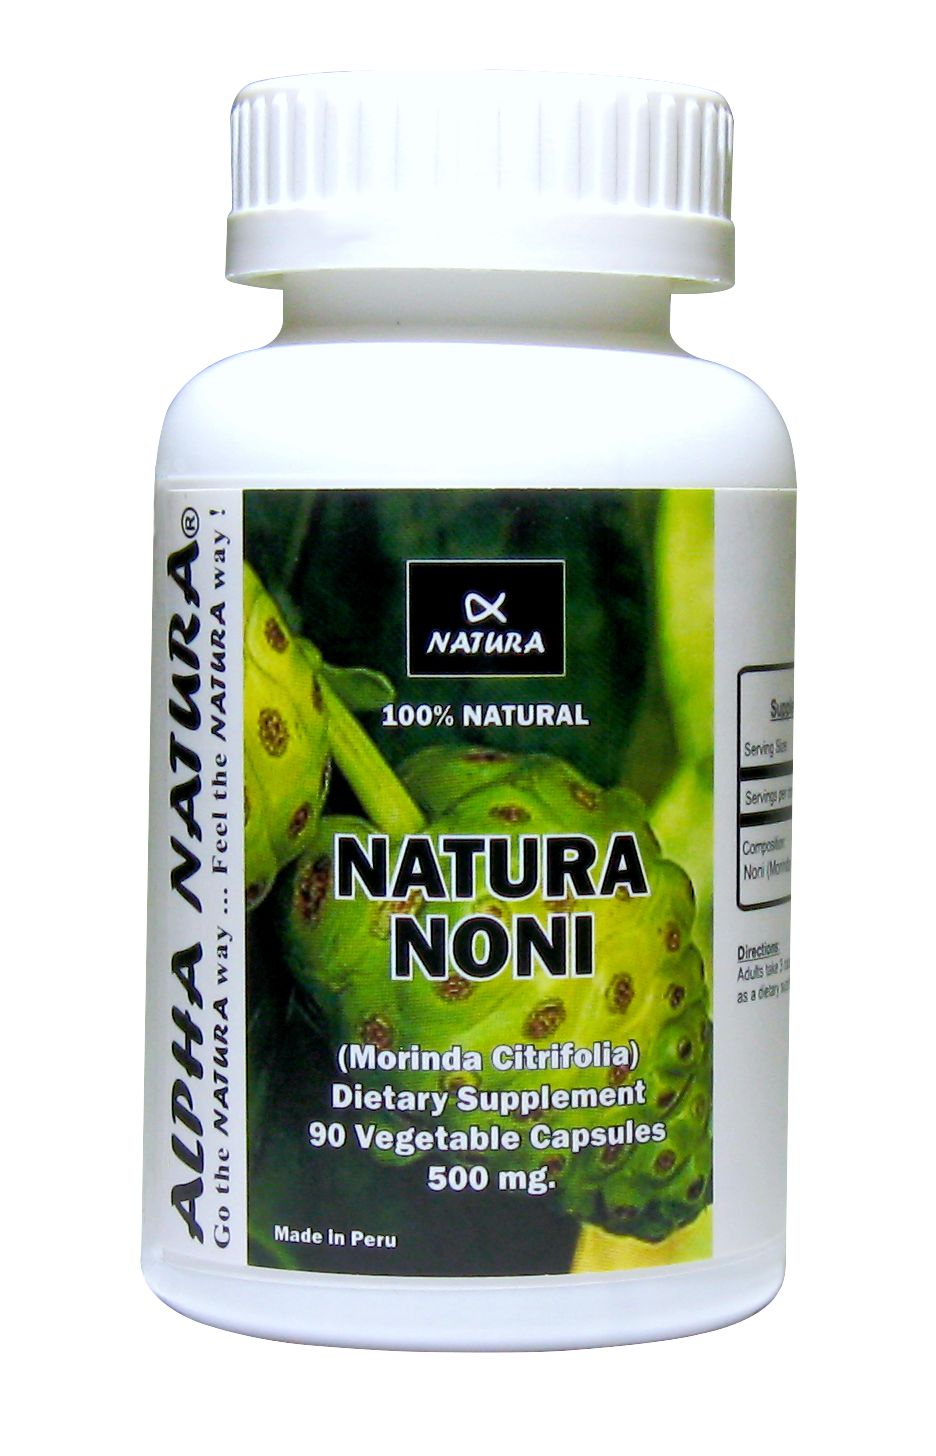 NONI (Increases defense, and energy body)